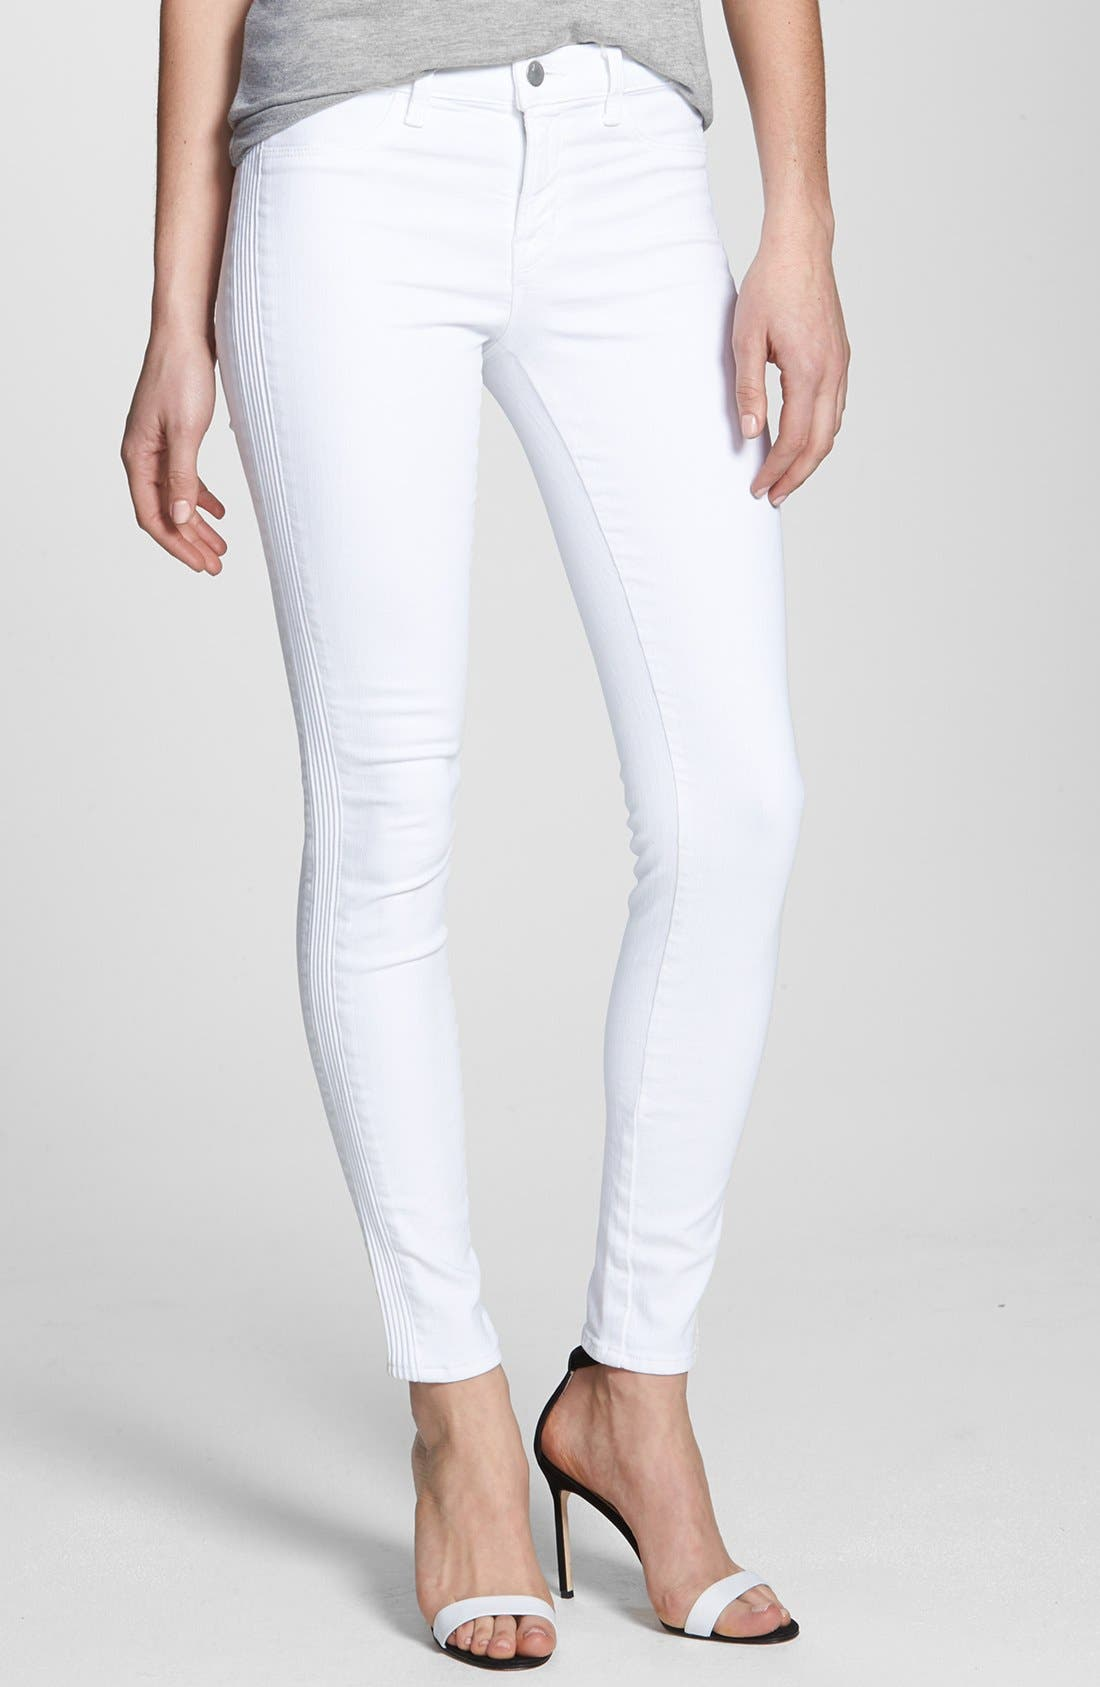 Alternate Image 1 Selected - J Brand Mid Rise Skinny Jeans (Blanc)